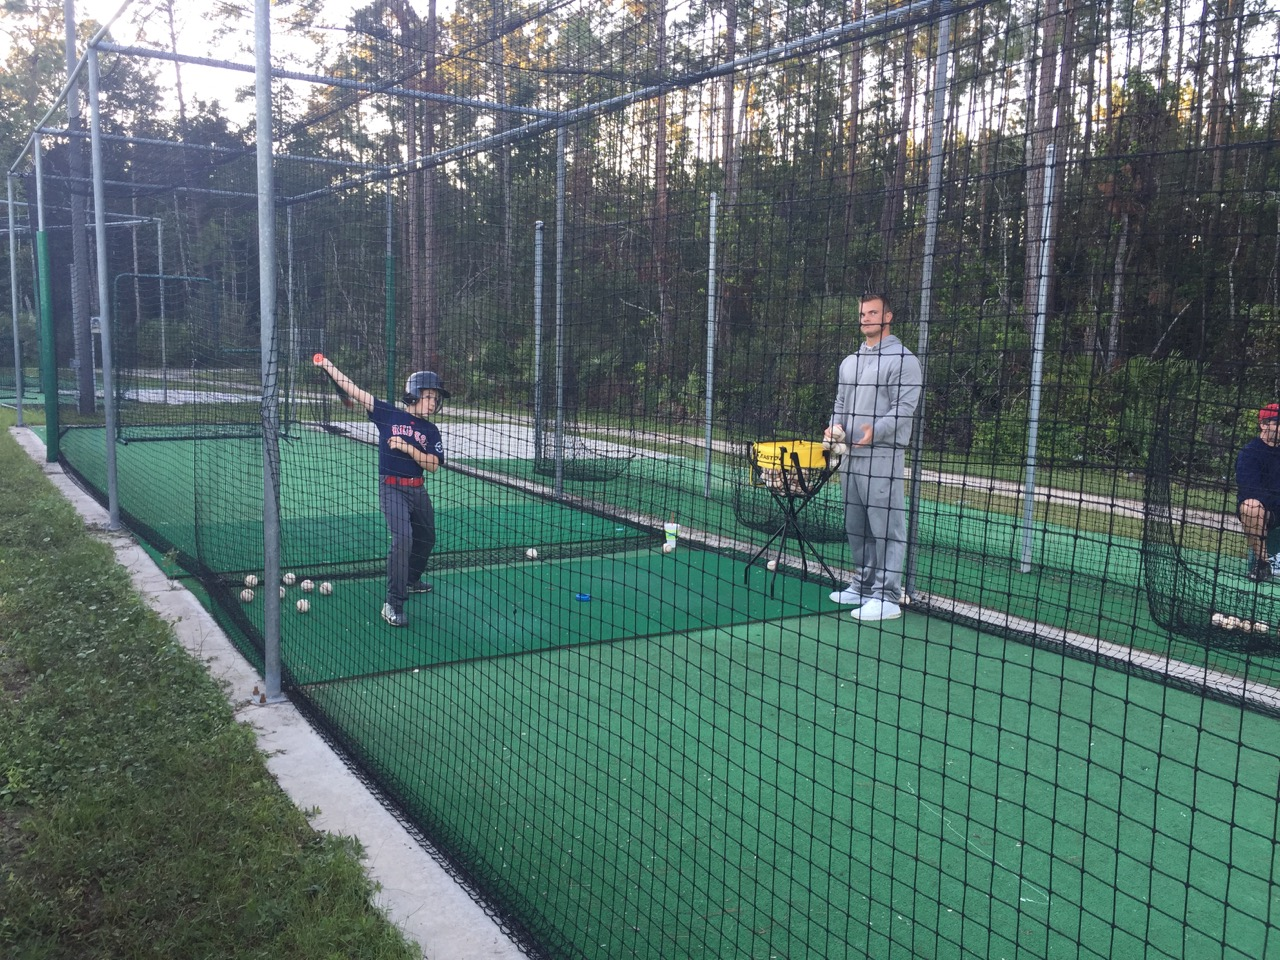 Batting with A.J. Kubala